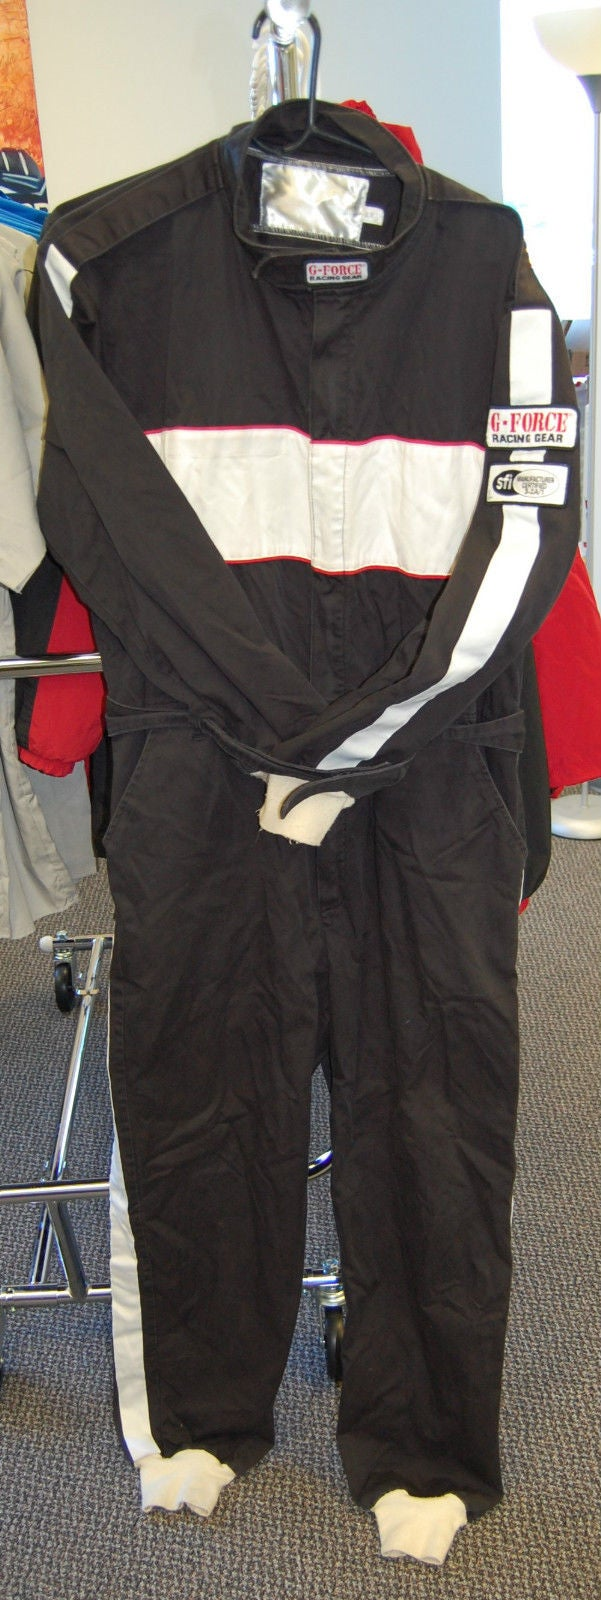 Wear a fire suit at a track day?